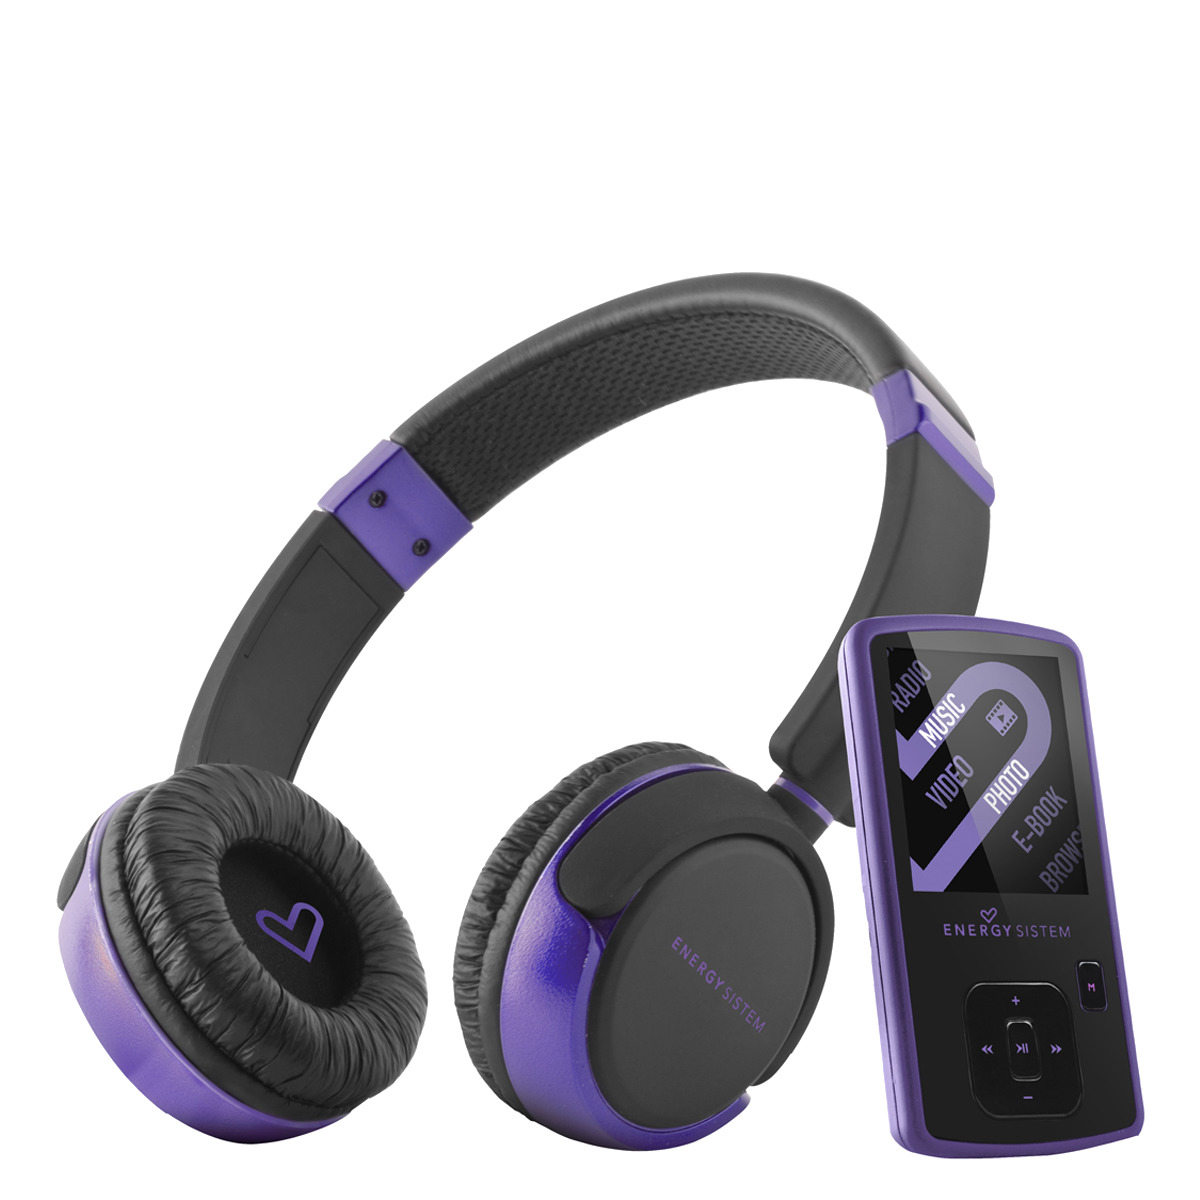 Reproductor MP4 Energy Sistem DJ 2 Violet Dream de 4 GB con radio FM y LCD 1,8''